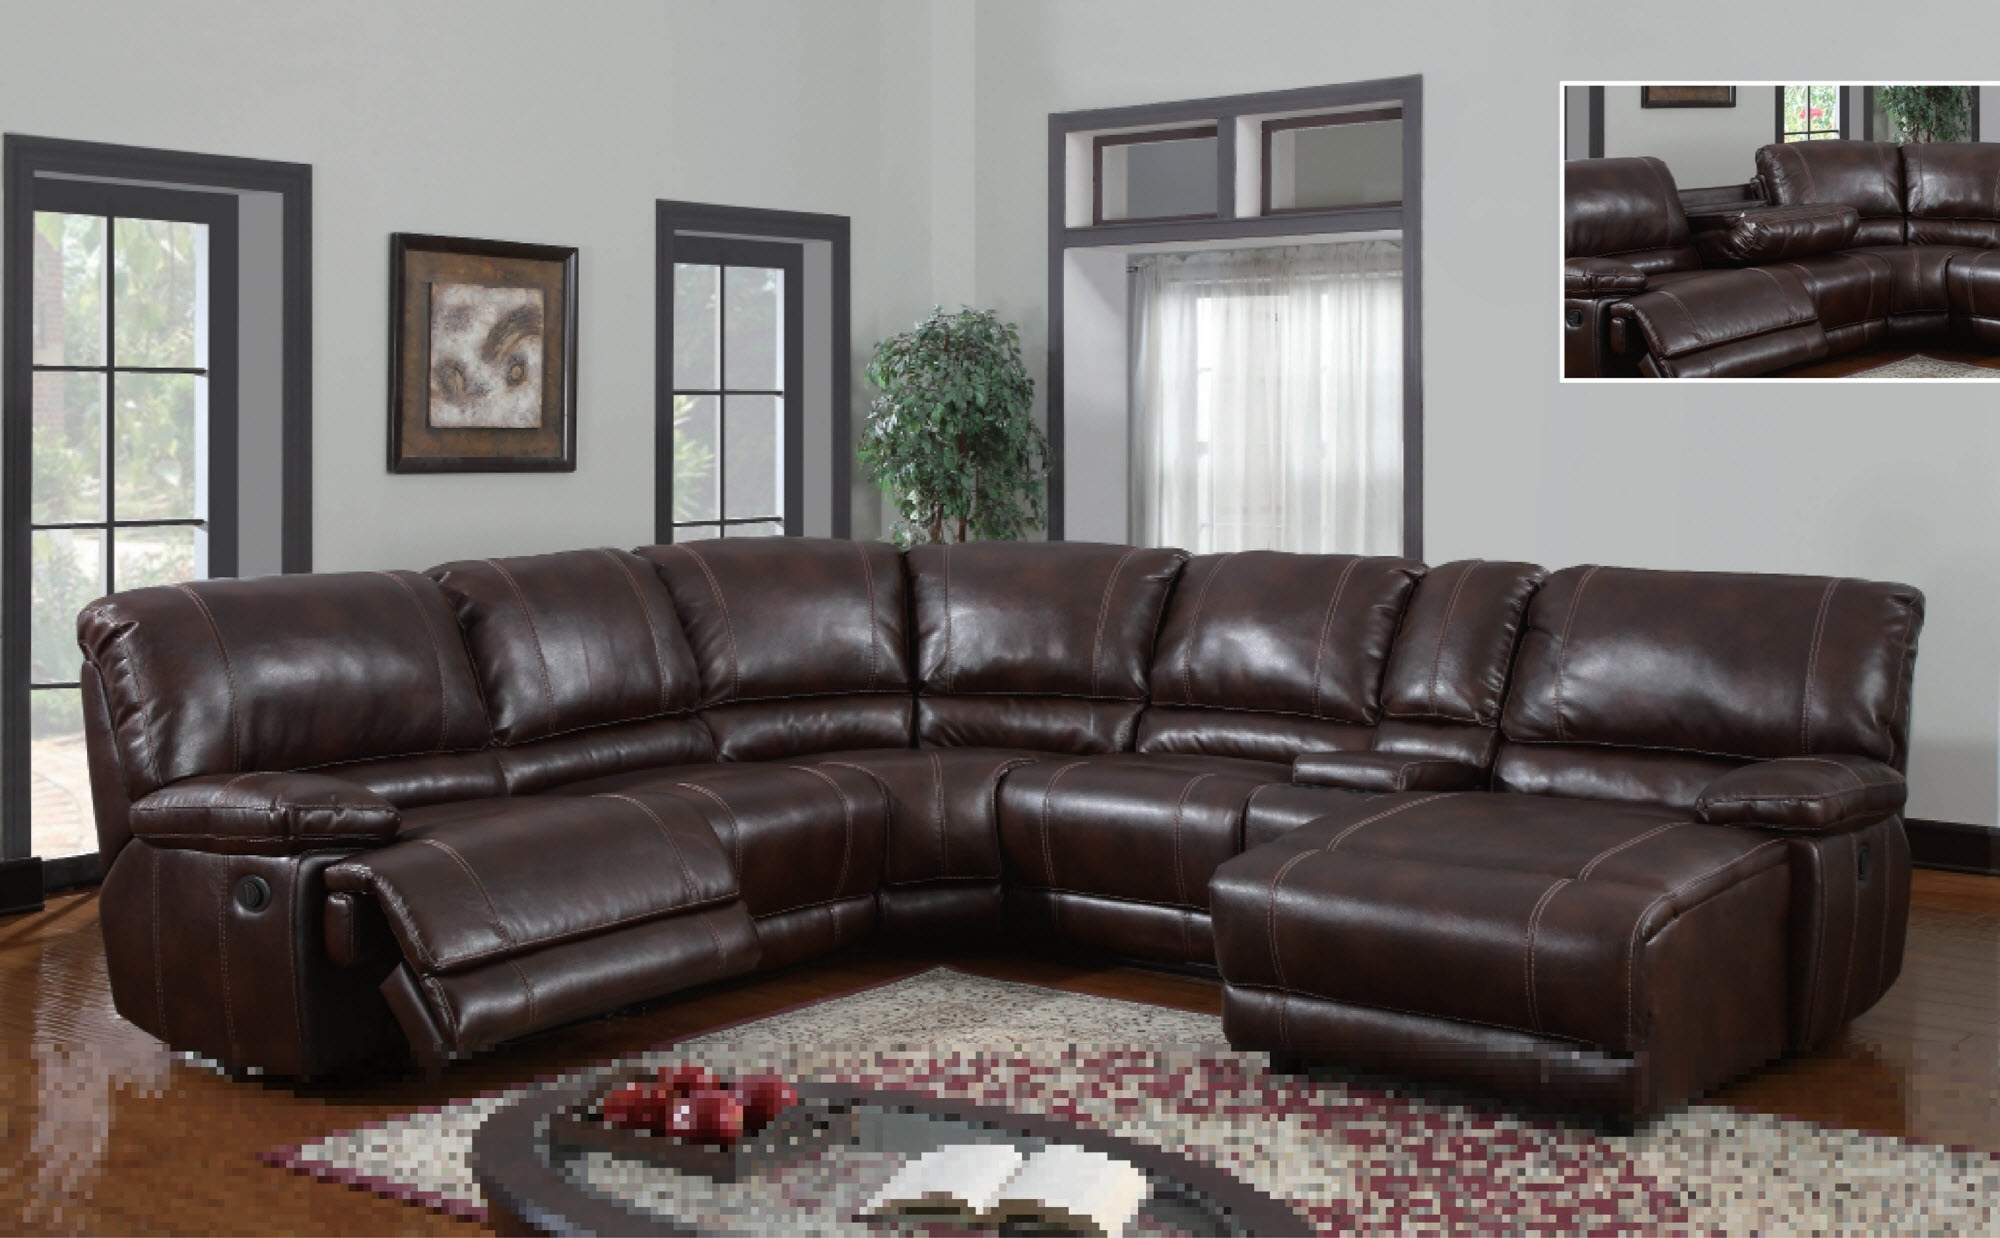 U1953 Global Furniture Usa Sectional With Power Recliner And Chaise Throughout Sectional Sofas With Power Recliners (Image 10 of 10)